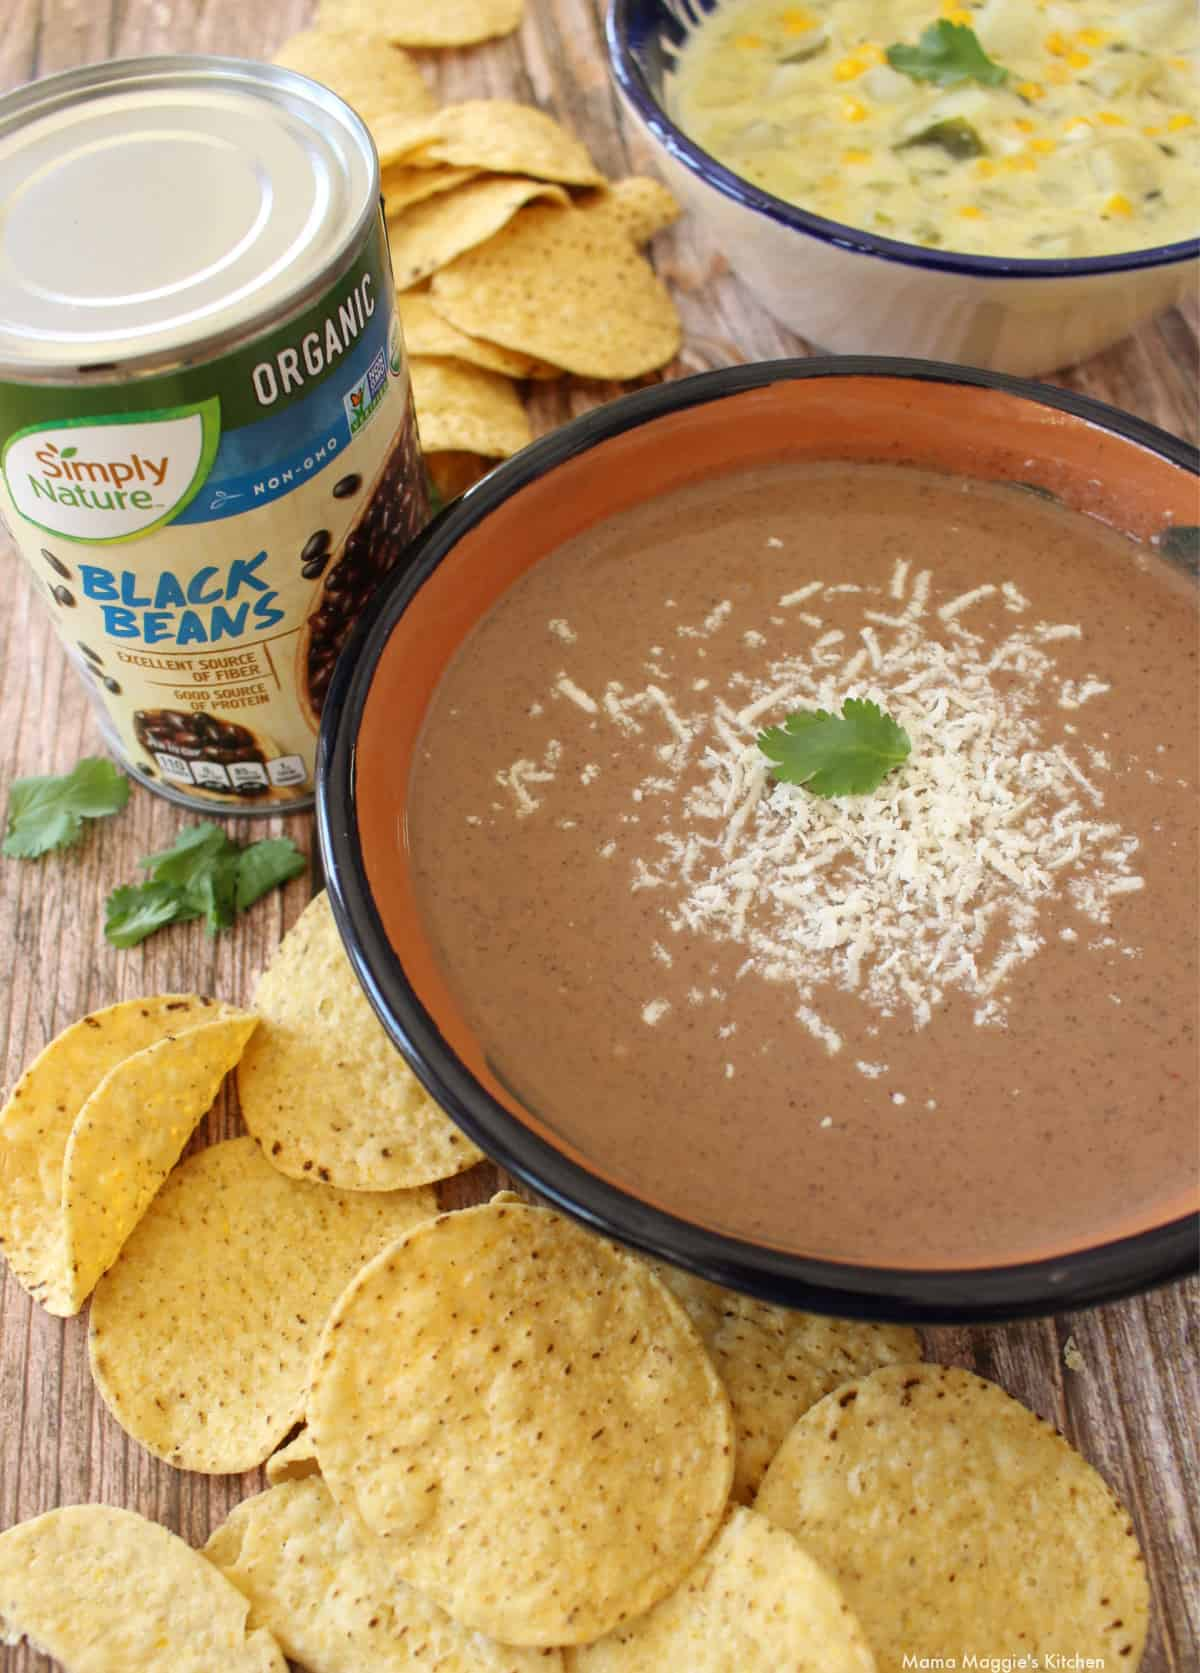 A bowl of Crema de Frijol Negro next to chips and a can of beans.